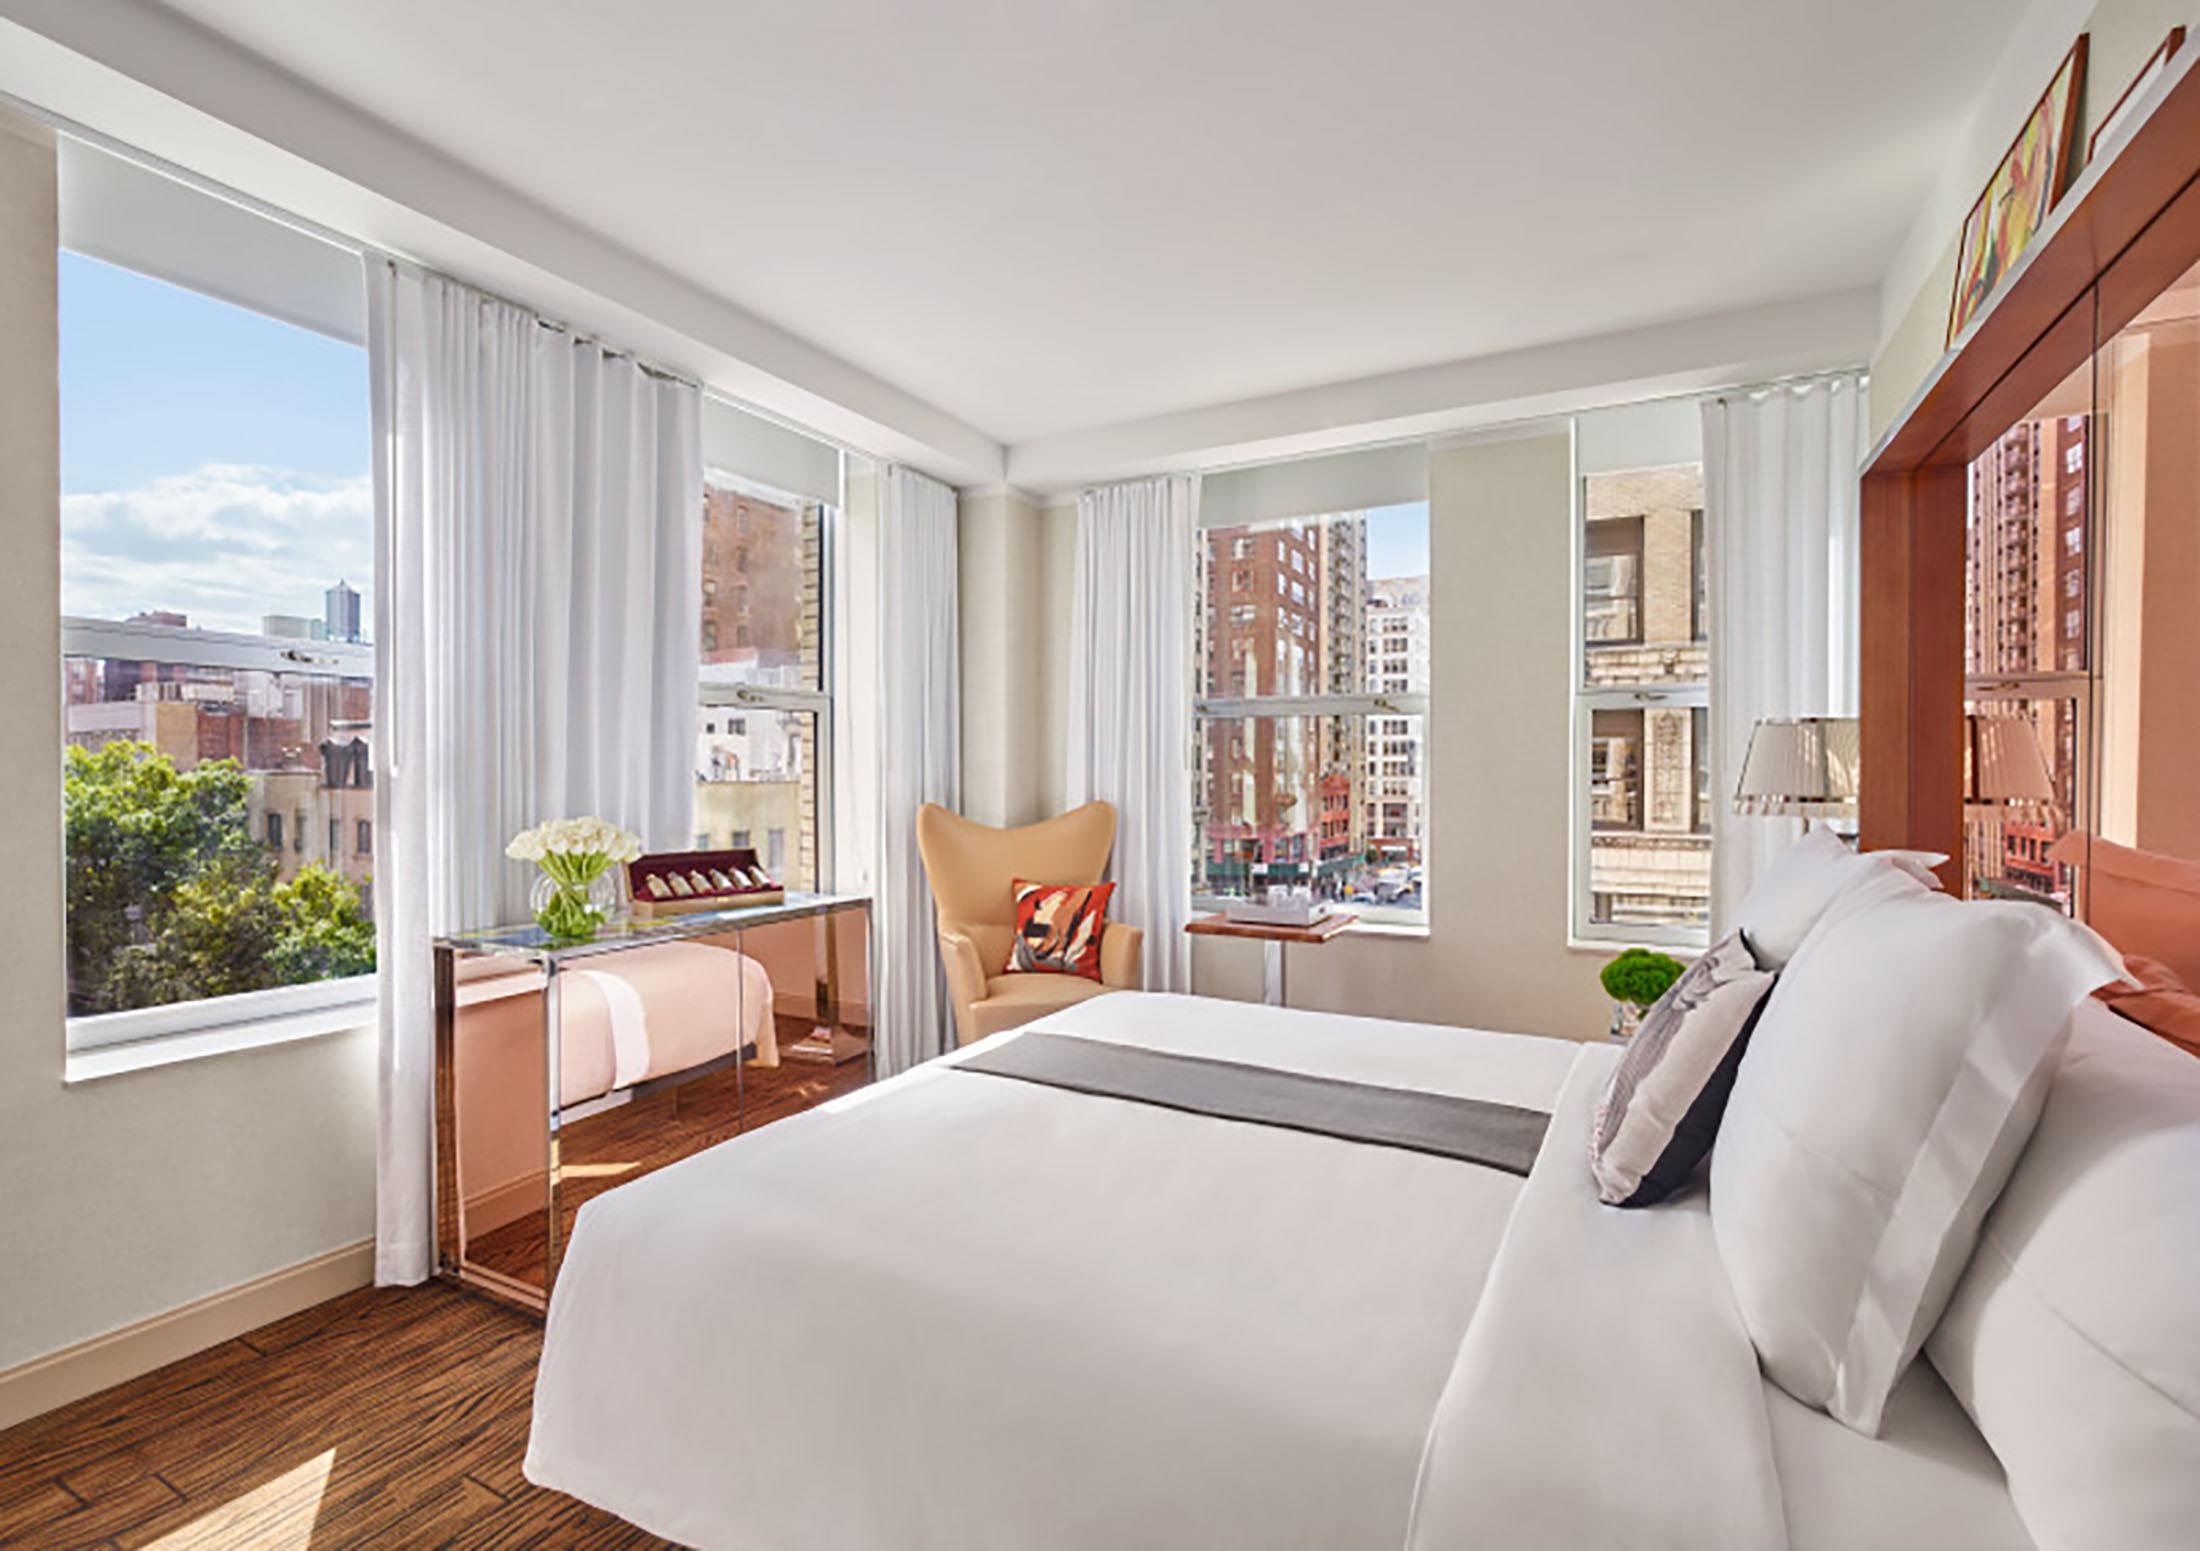 A bright hotel room overlooking the city